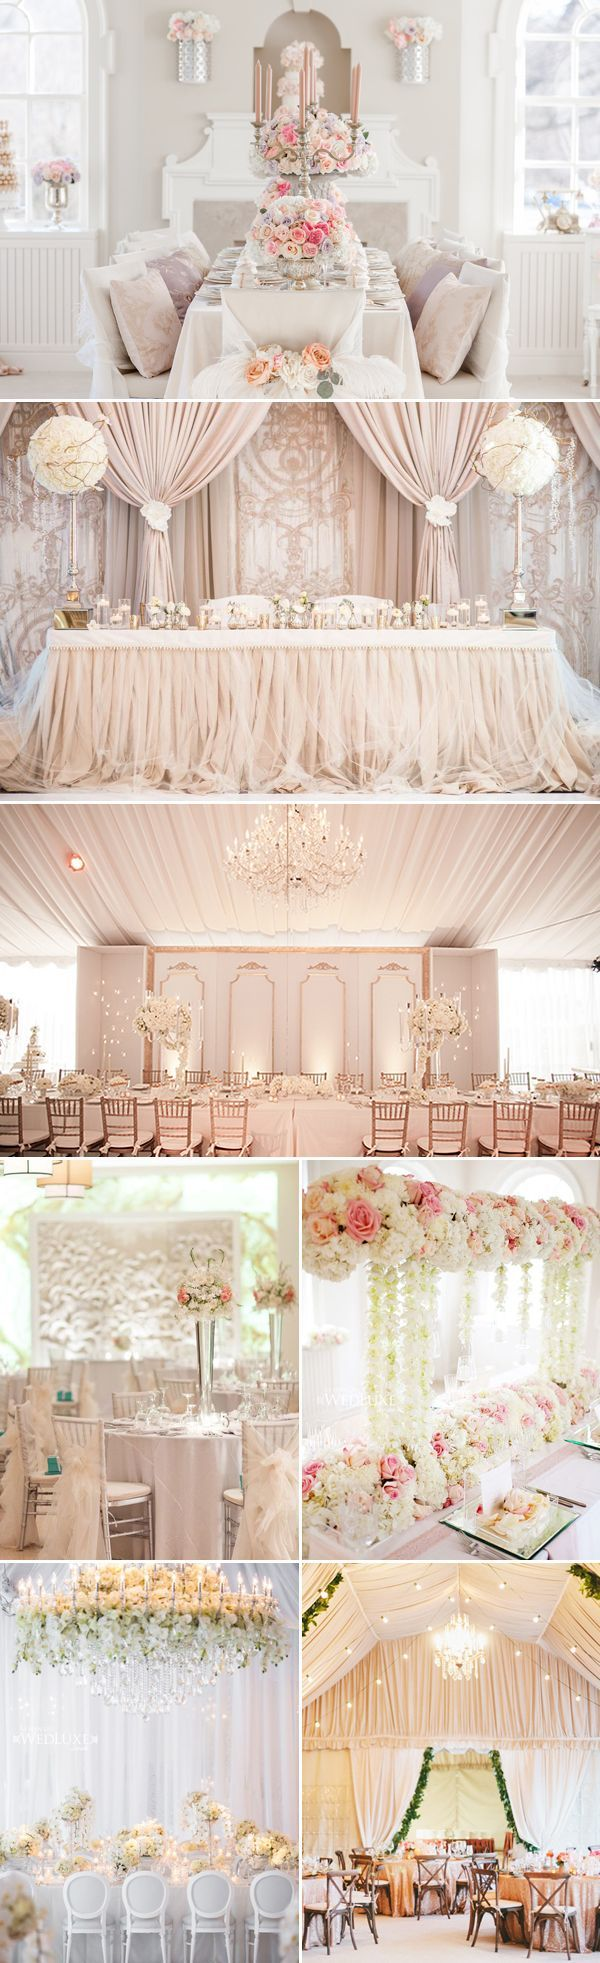 Luxury wedding inspiration 30 Stunning Luxury Indoor Reception Decoration Ideas You don't Want to Miss!